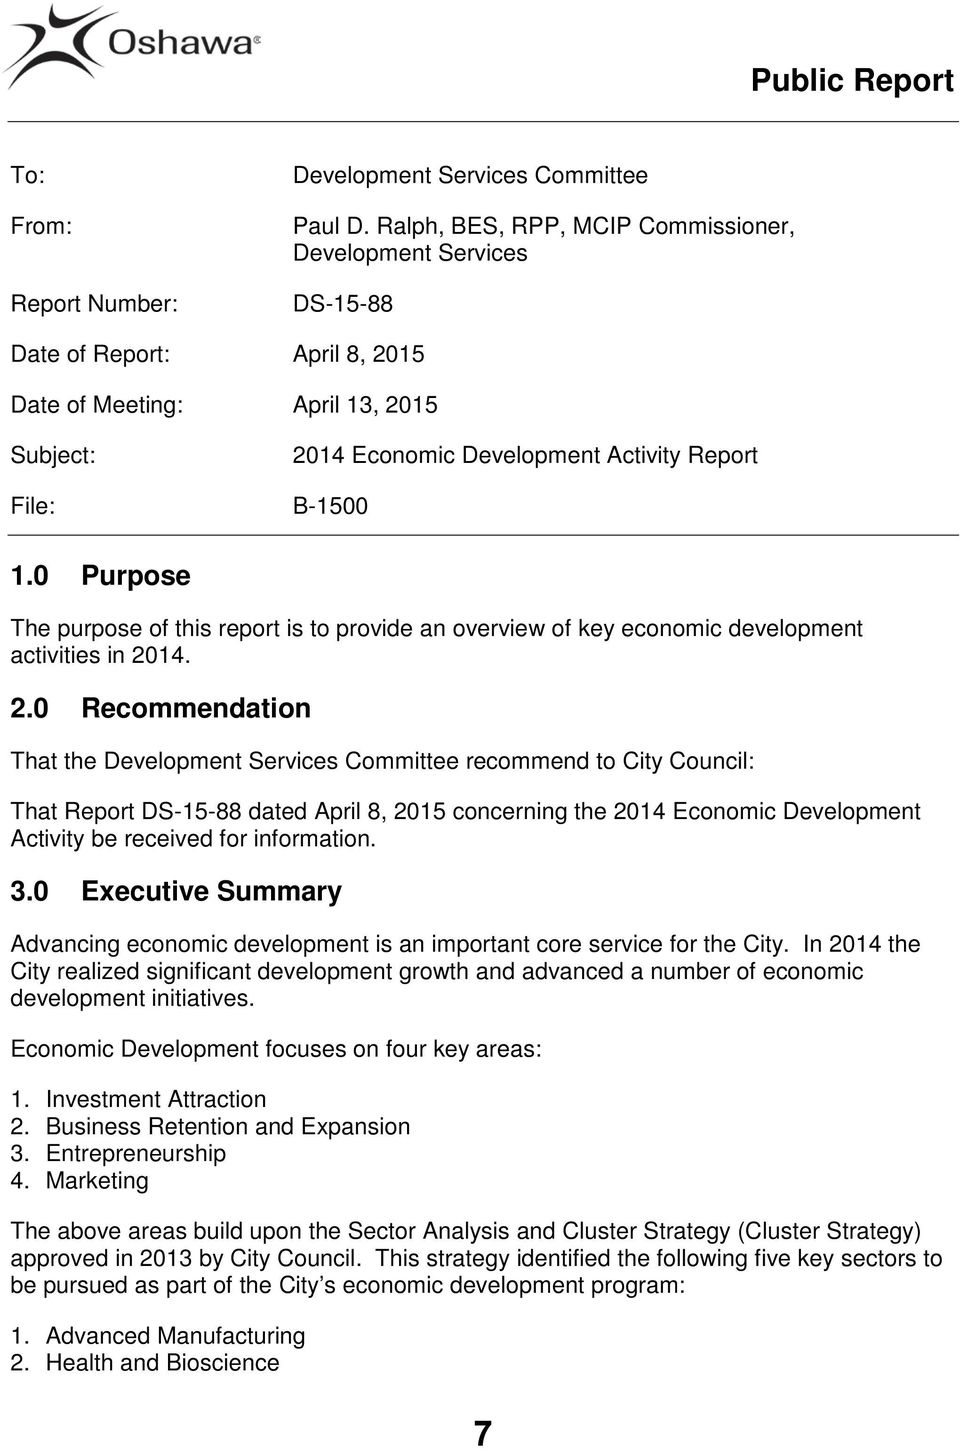 0 Purpose The purpose of this report is to provide an overview of key economic development activities in 20